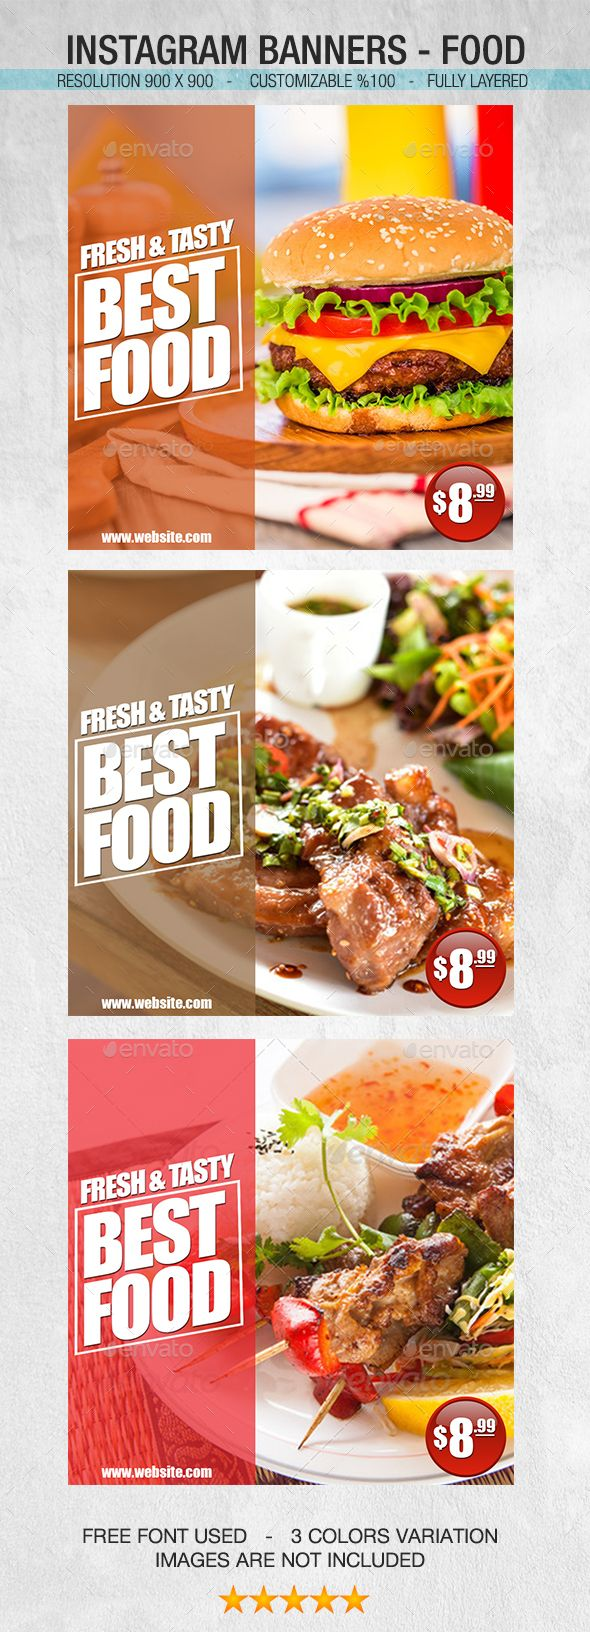 Instagram Food BannersTemplate PSD #design Download: http://graphicriver.net/item/instagram-banners-food/14435926?ref=ksioks